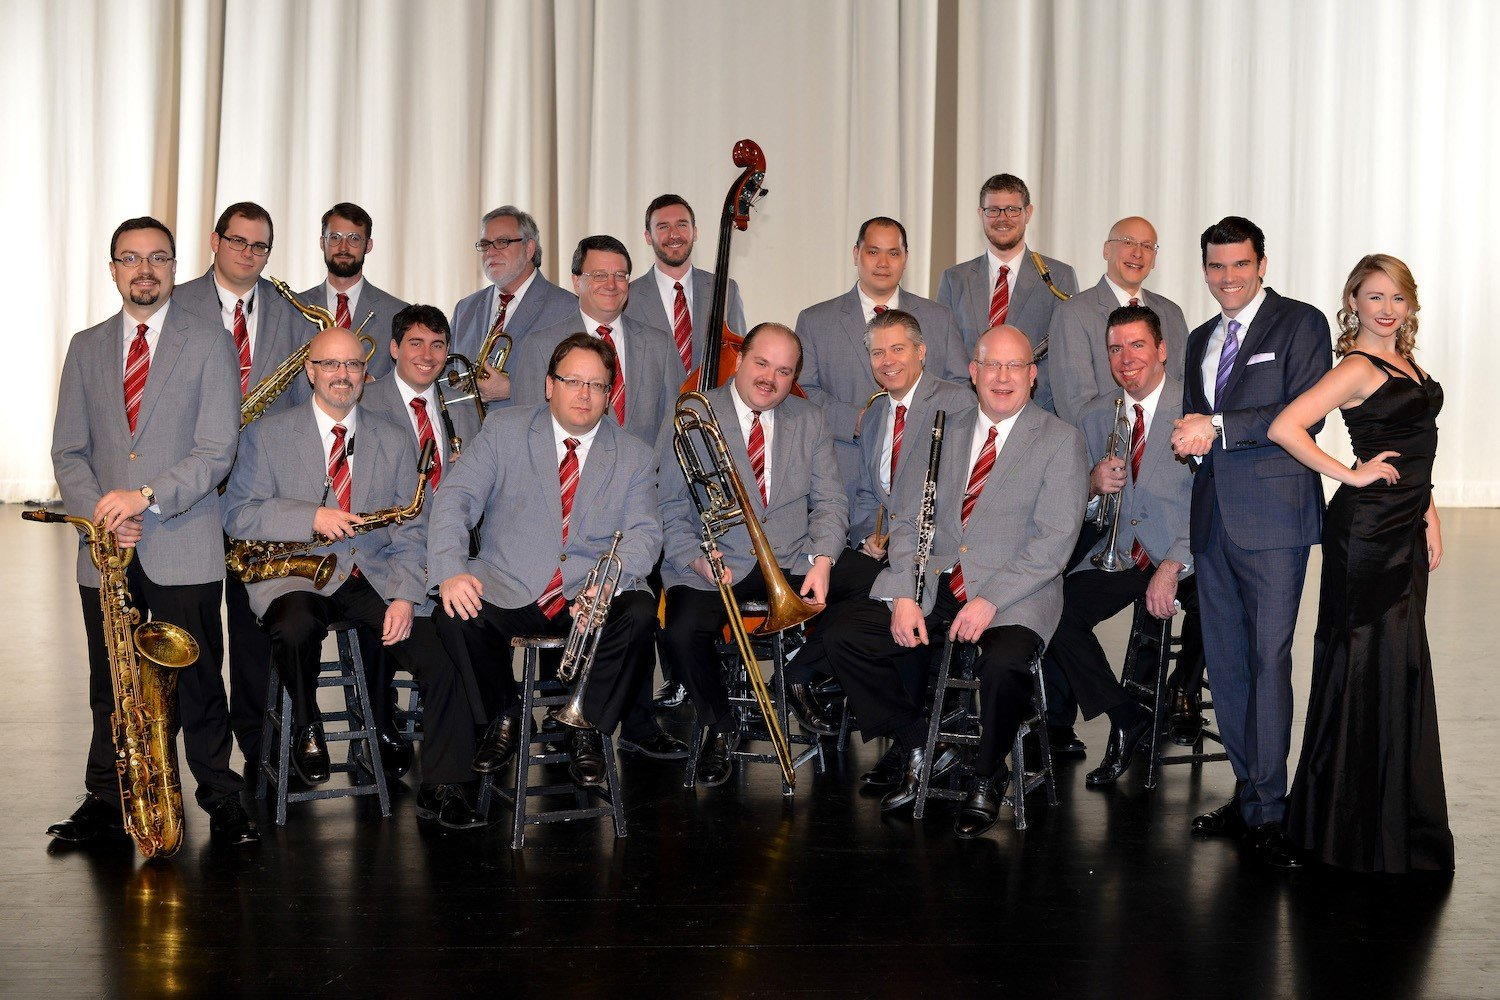 As part of EMMA Concert Series' 41st season, Glenn Miller Orchestra will perform on Jan. 25.